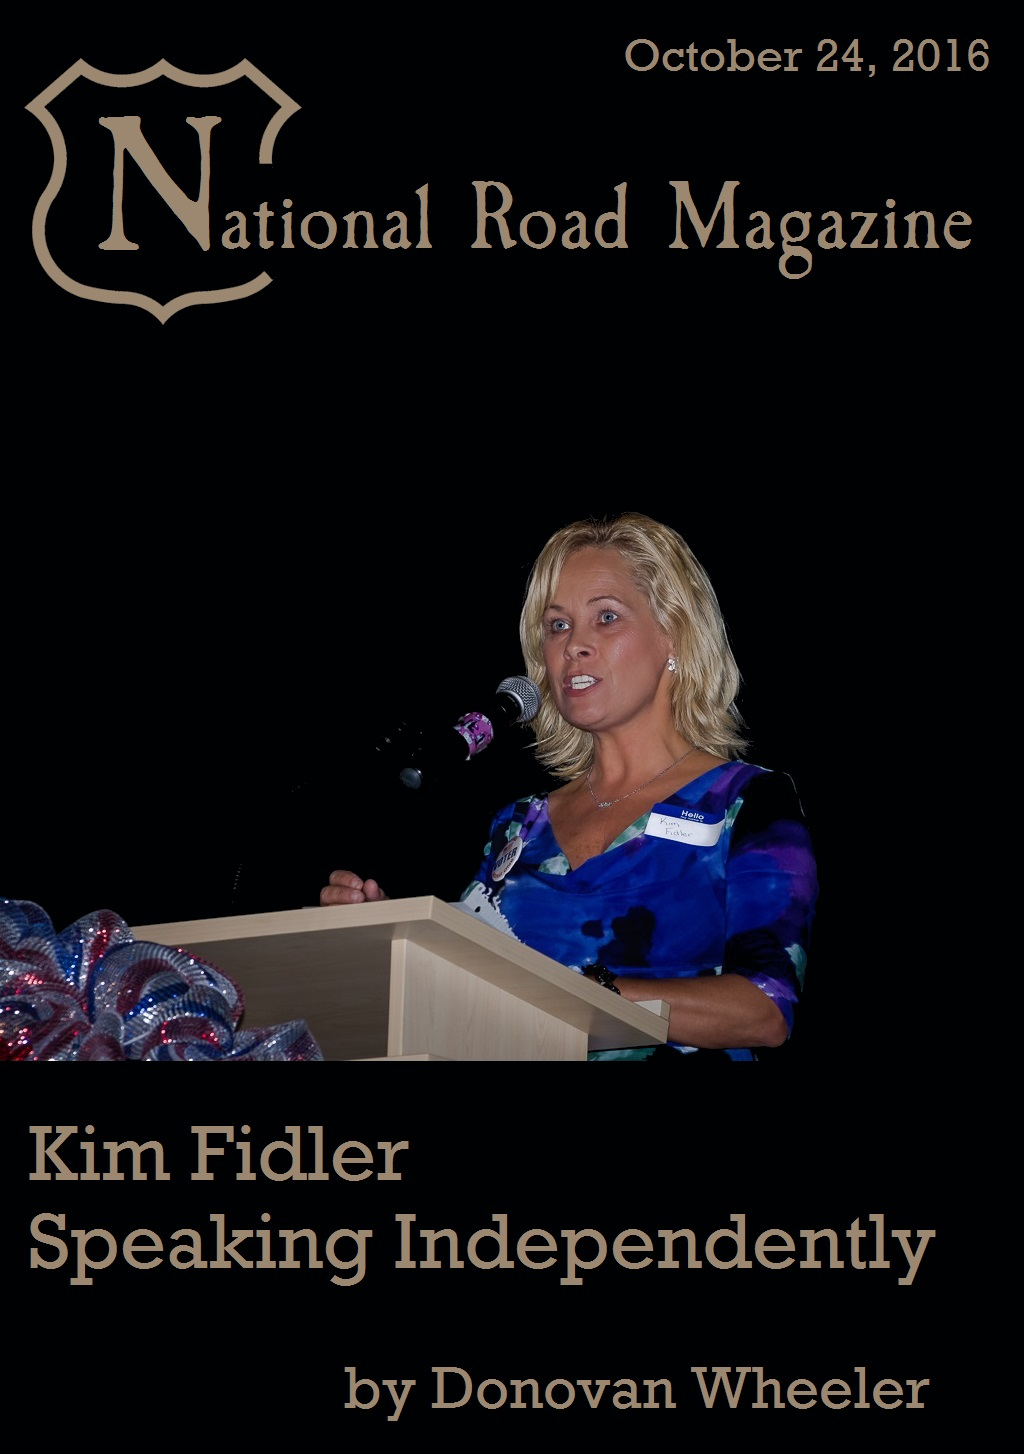 Cover Photo by Thomas F. Yeiser